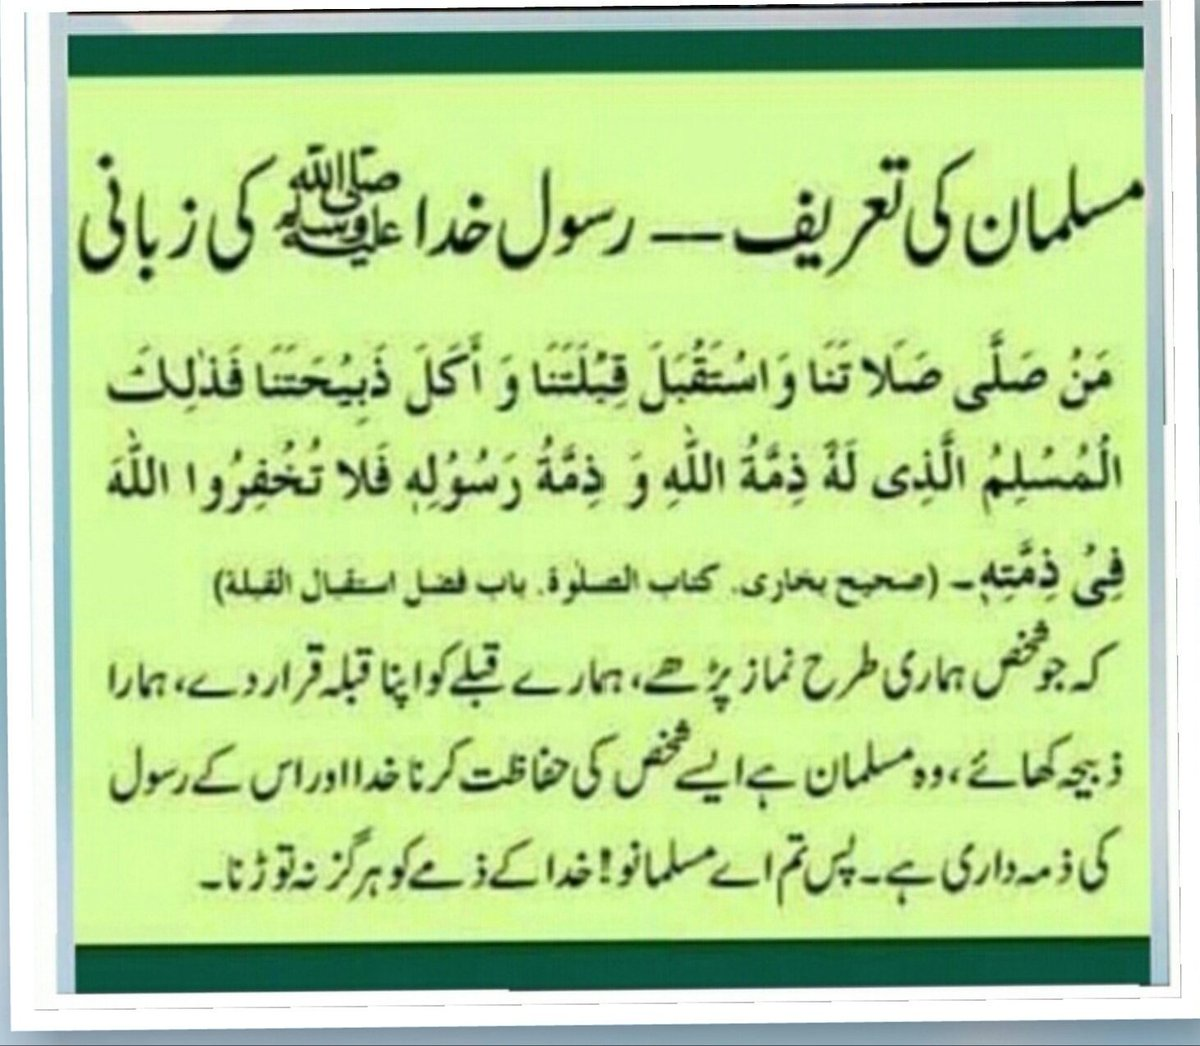 What is your opinion about this Hadees?pic.twitter.com/79X4ign0VD